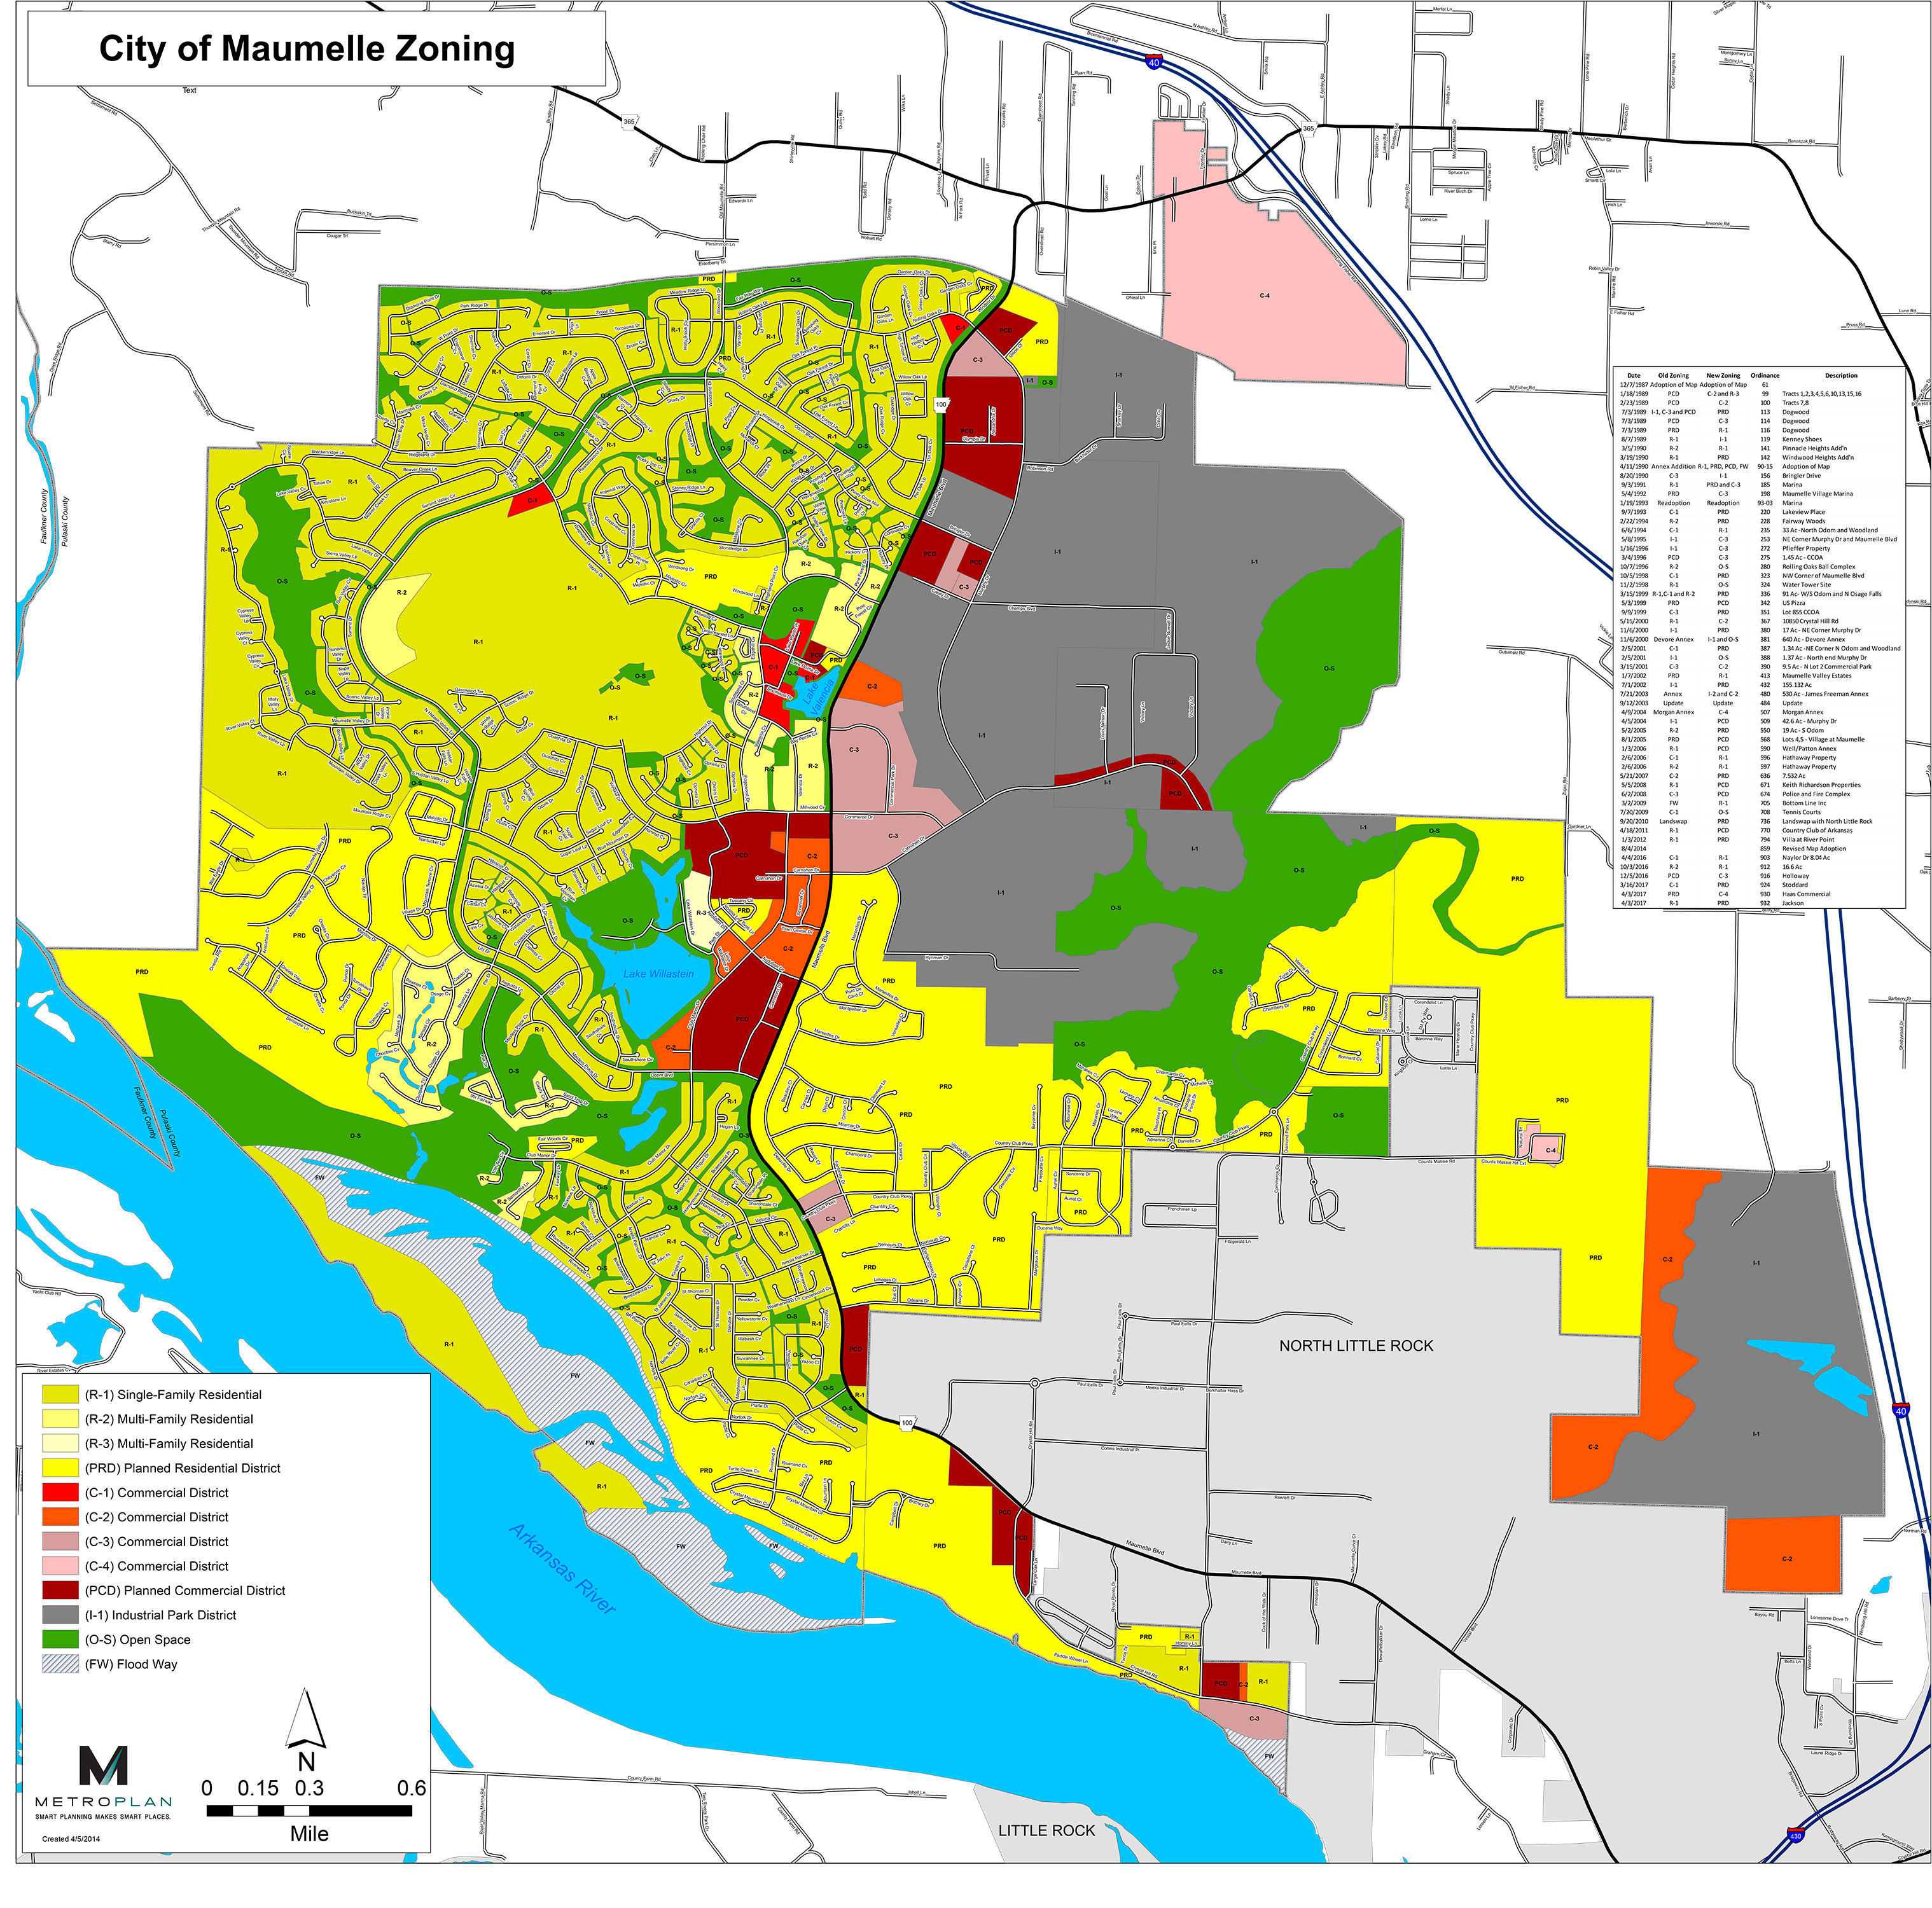 Maumelle Zoning Map